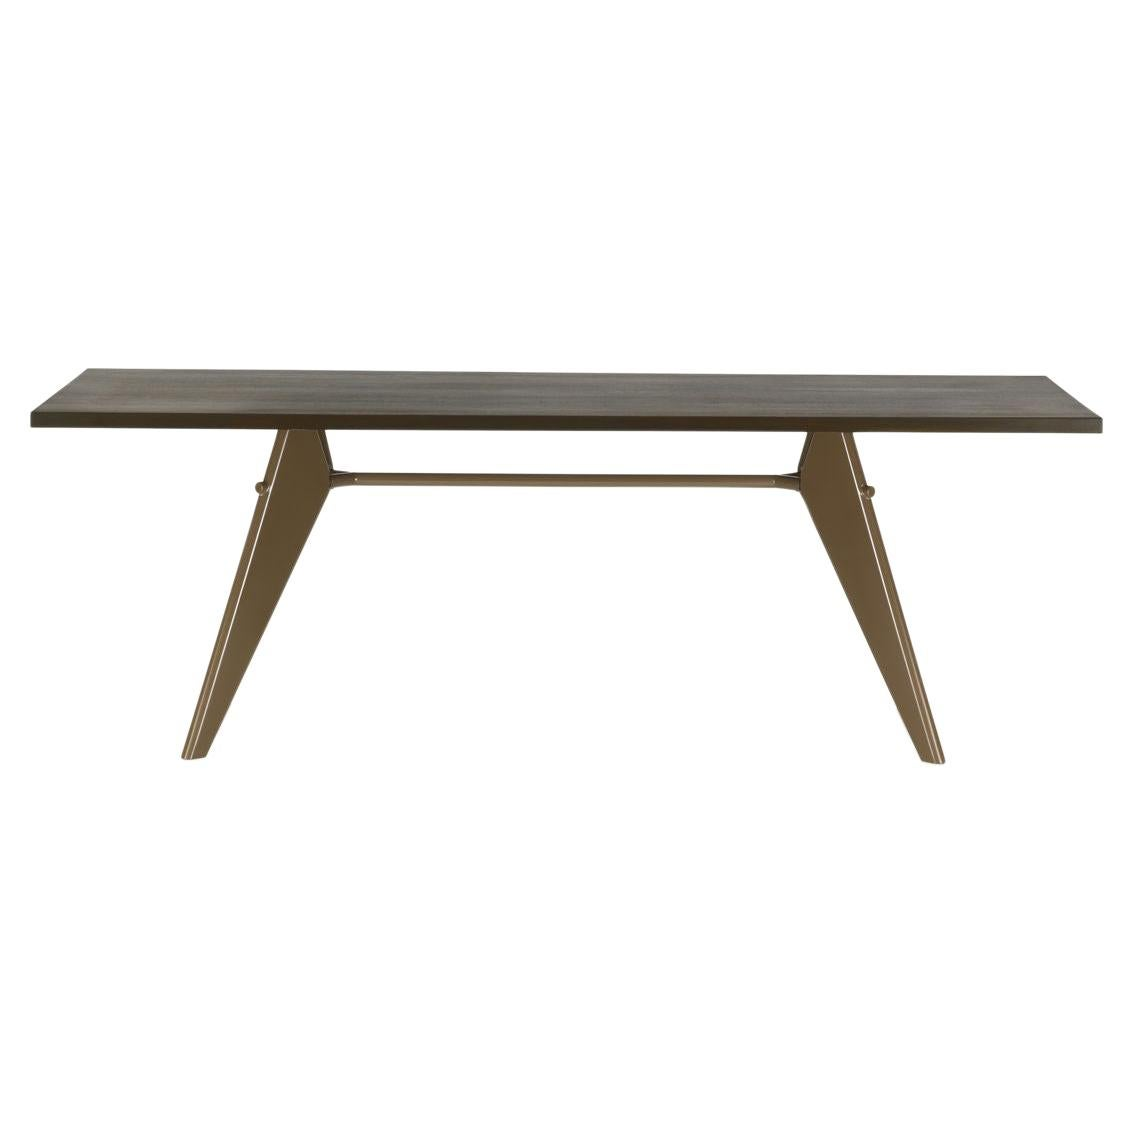 Jean Prouvé EM Table in Wood and Steel by Vitra